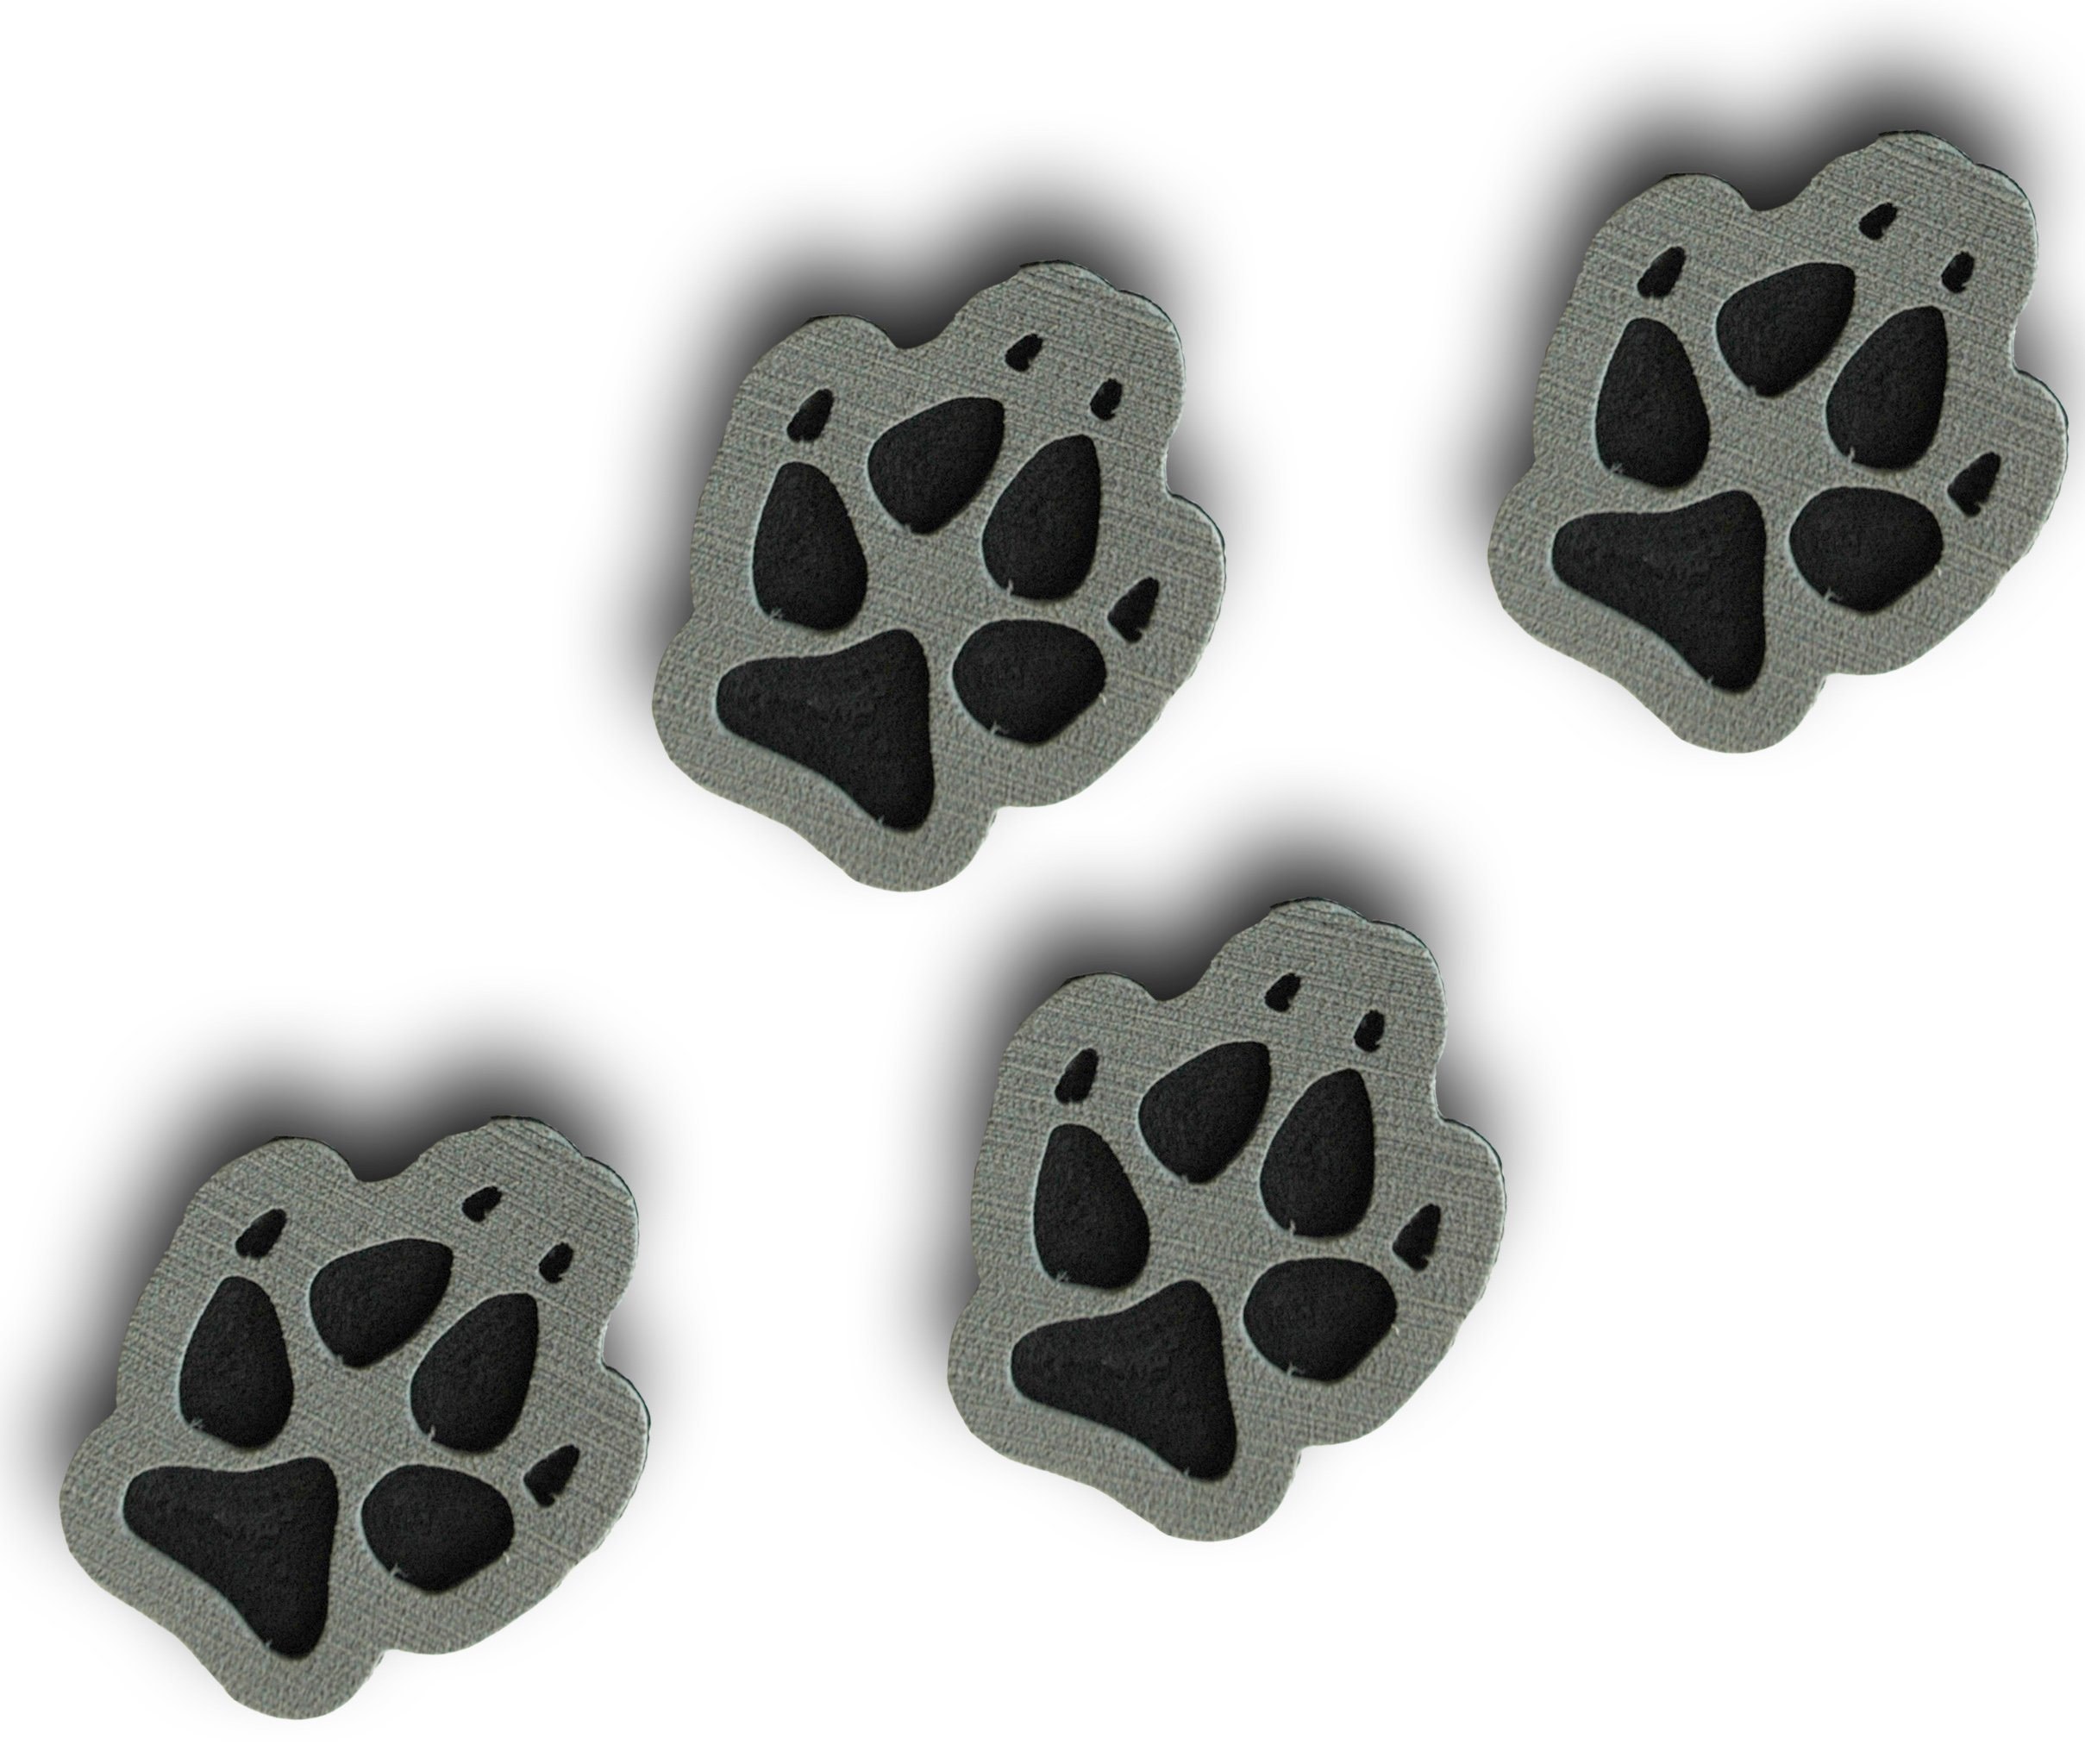 ToeJamR Stomp Pads - 4 Puppy Paws - Gray by Toejamr